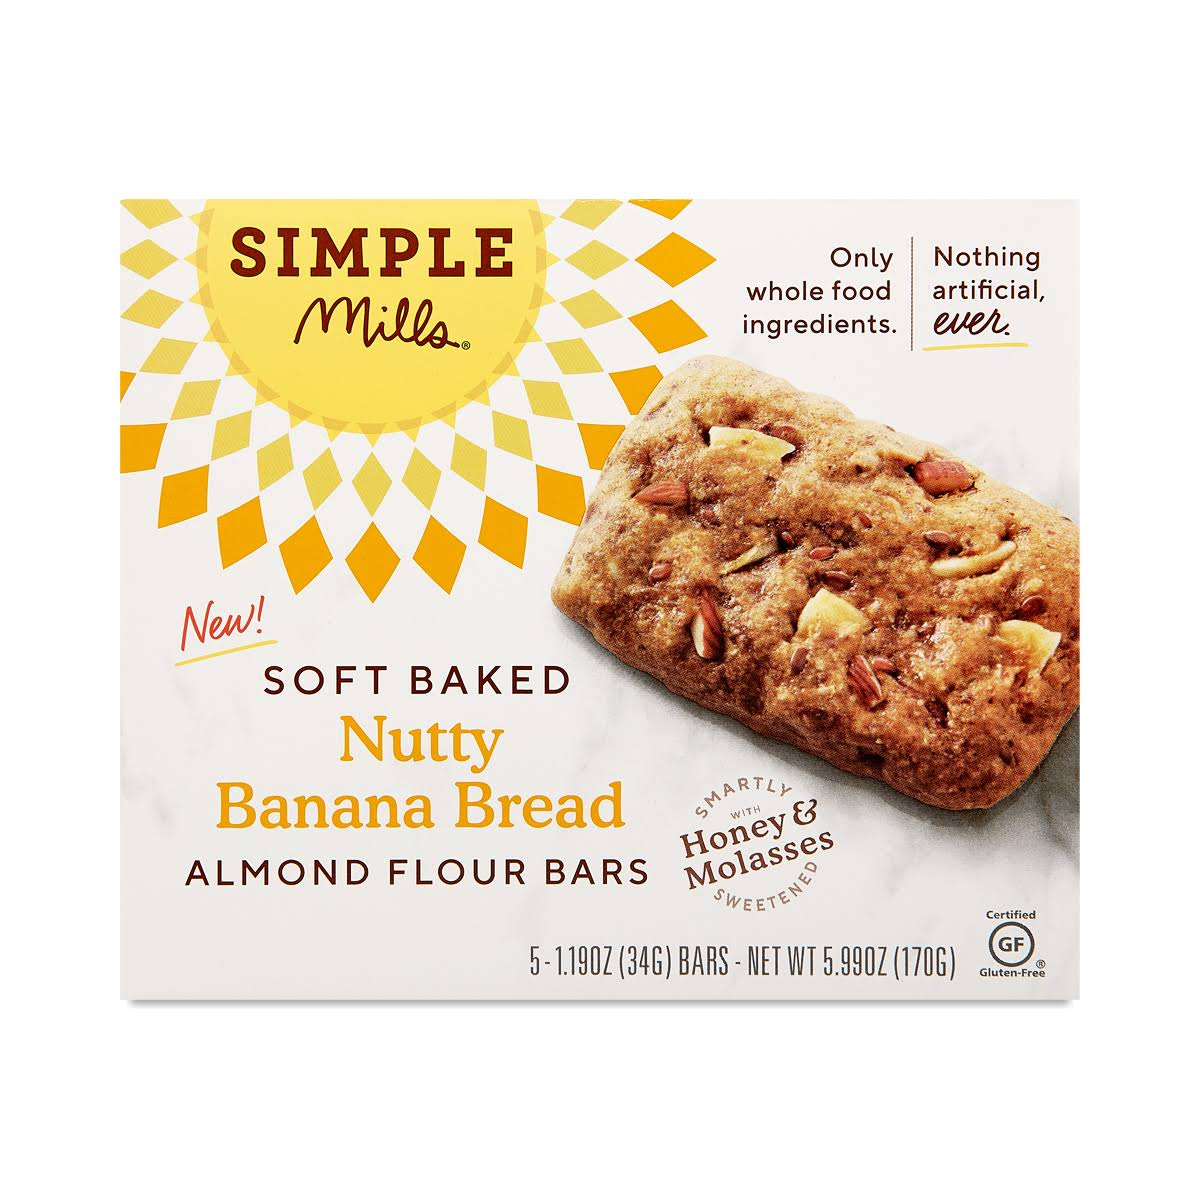 Simple Mills Almond Flour Bars, Soft Baked, Nutty Banana Bread - 5 pack, 1.19 oz g bars